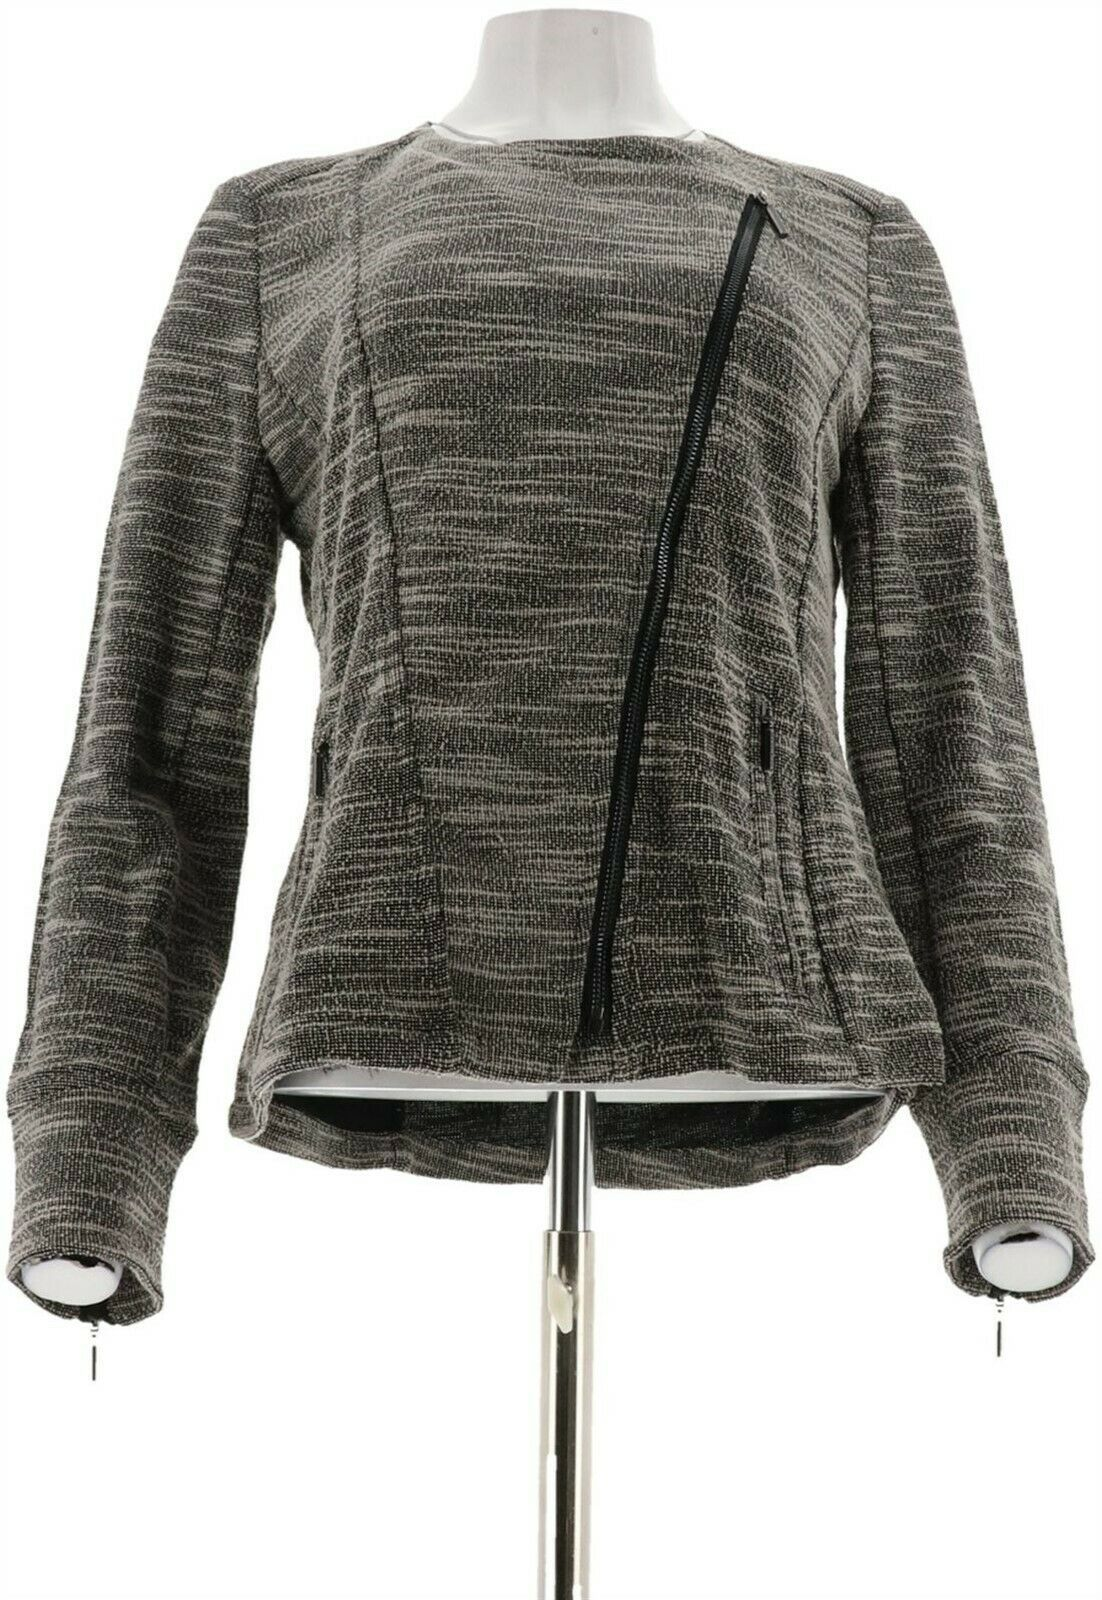 Primary image for Halston Slub Knit Asymmetrical Zip Moto Jacket Black 4 NEW A270336